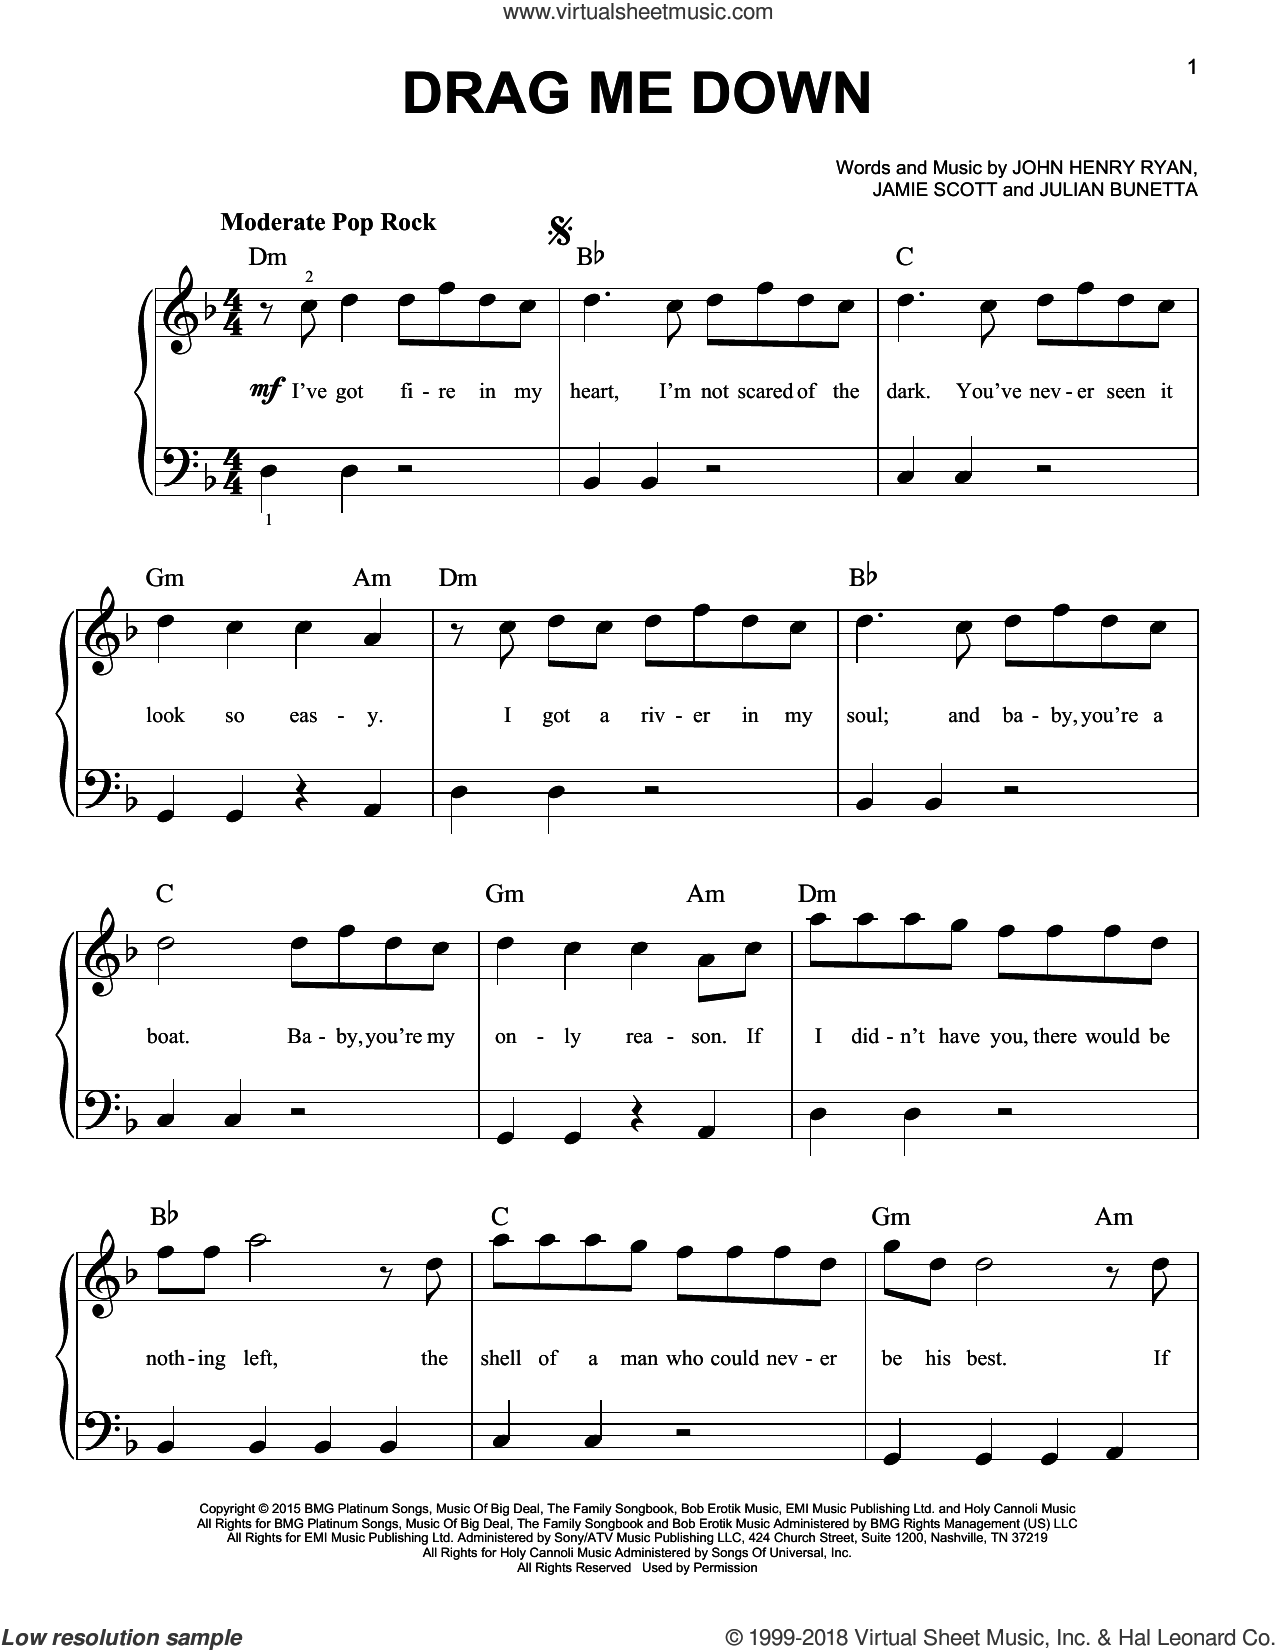 Drag Me Down sheet music for piano solo by Julian Bunetta, One Direction and Jamie Scott. Score Image Preview.